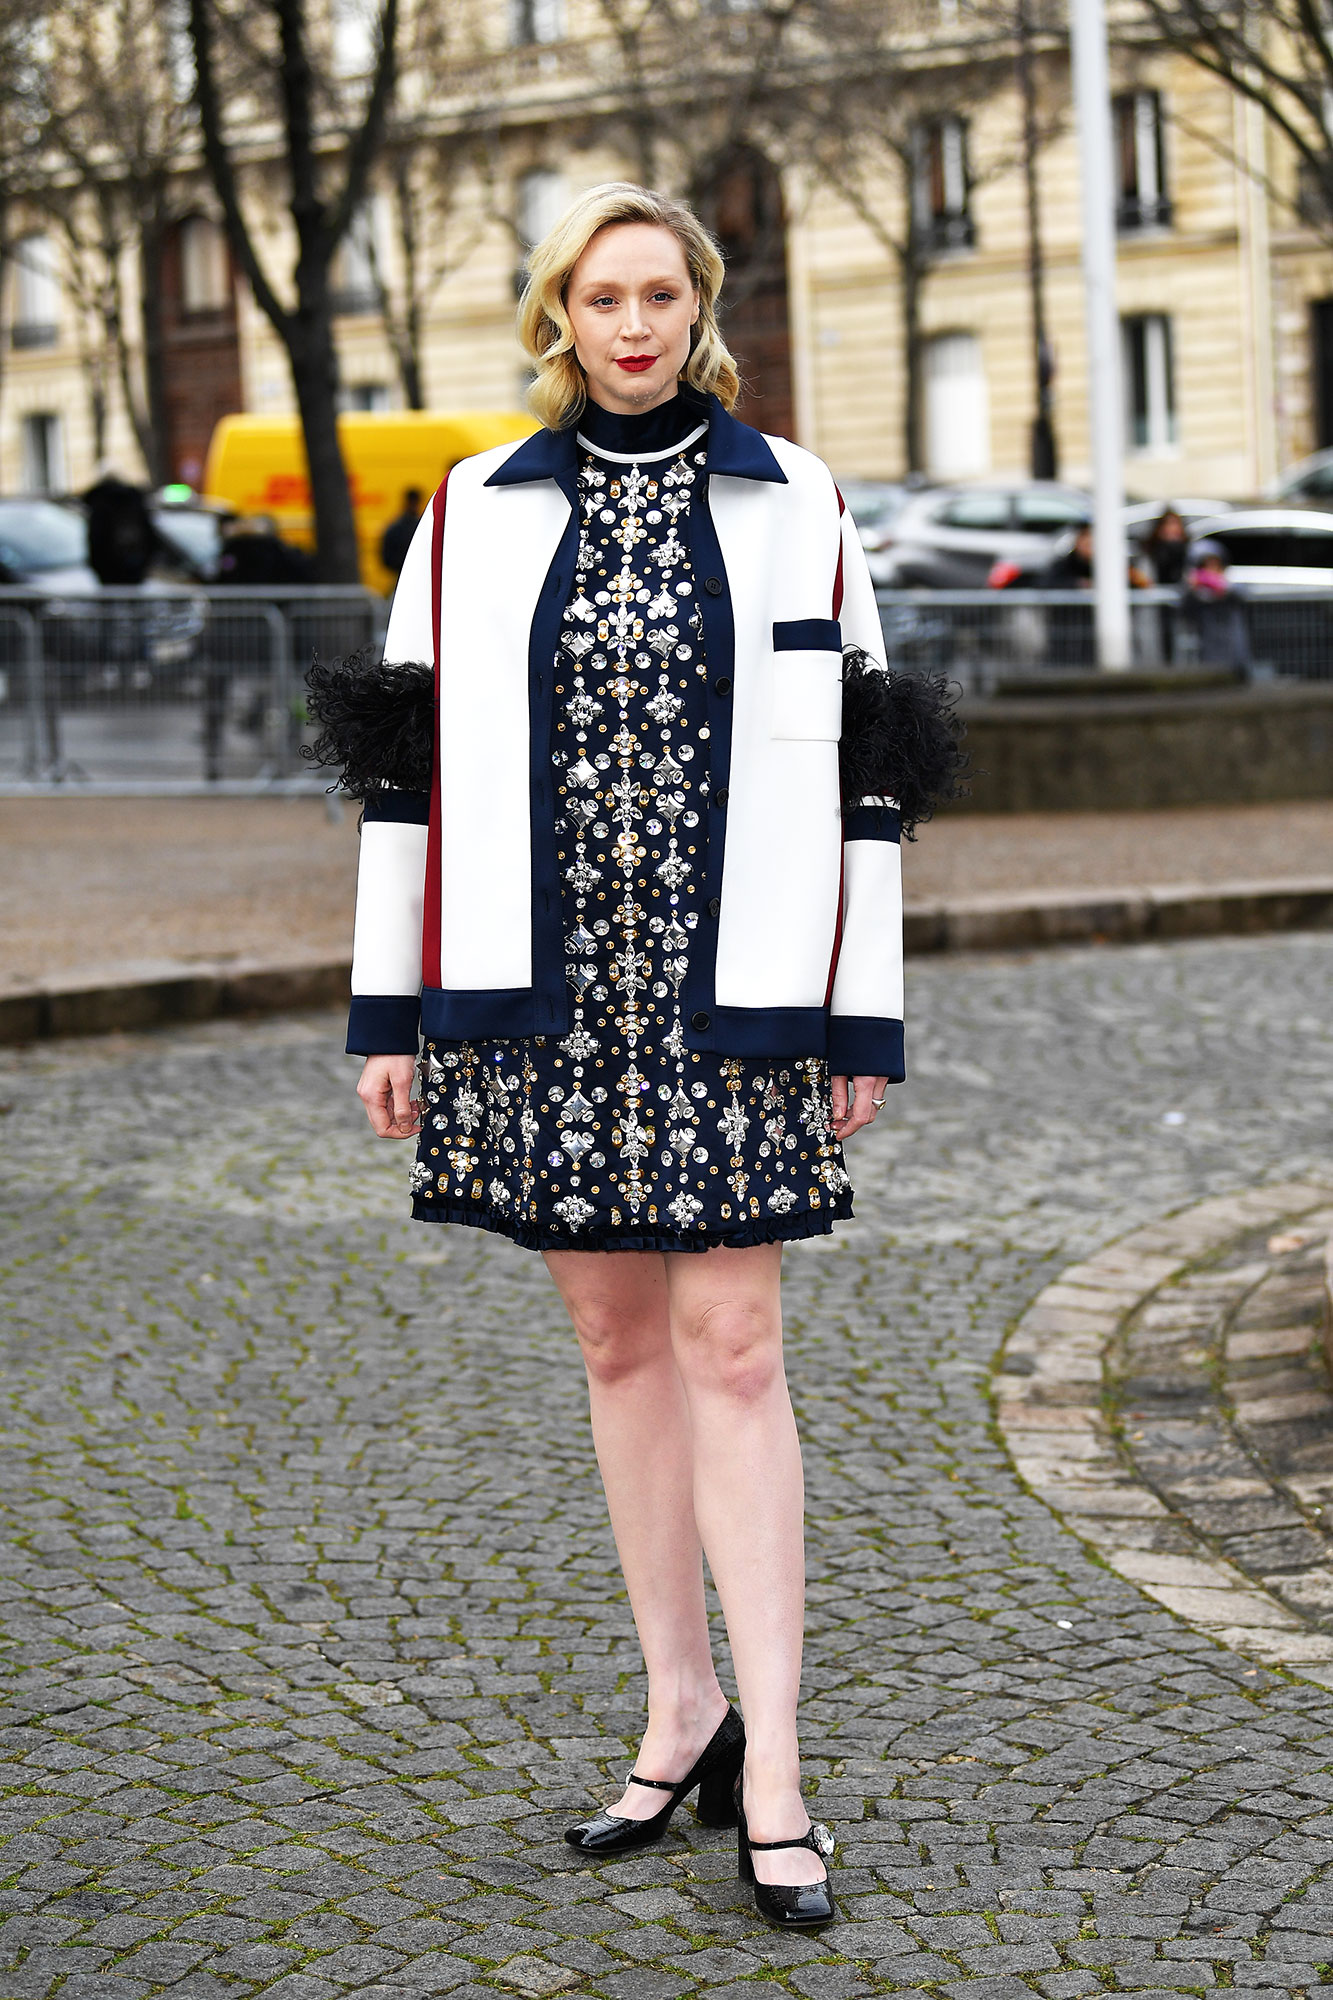 Gwendoline Christie Stars Continue to Wow on Day 9 of Paris Fashion Week - Winter was apparently not coming for the Game of Thrones star who skipped tights in favor of bare legs at the Miu Miu show on Tuesday, March 5.